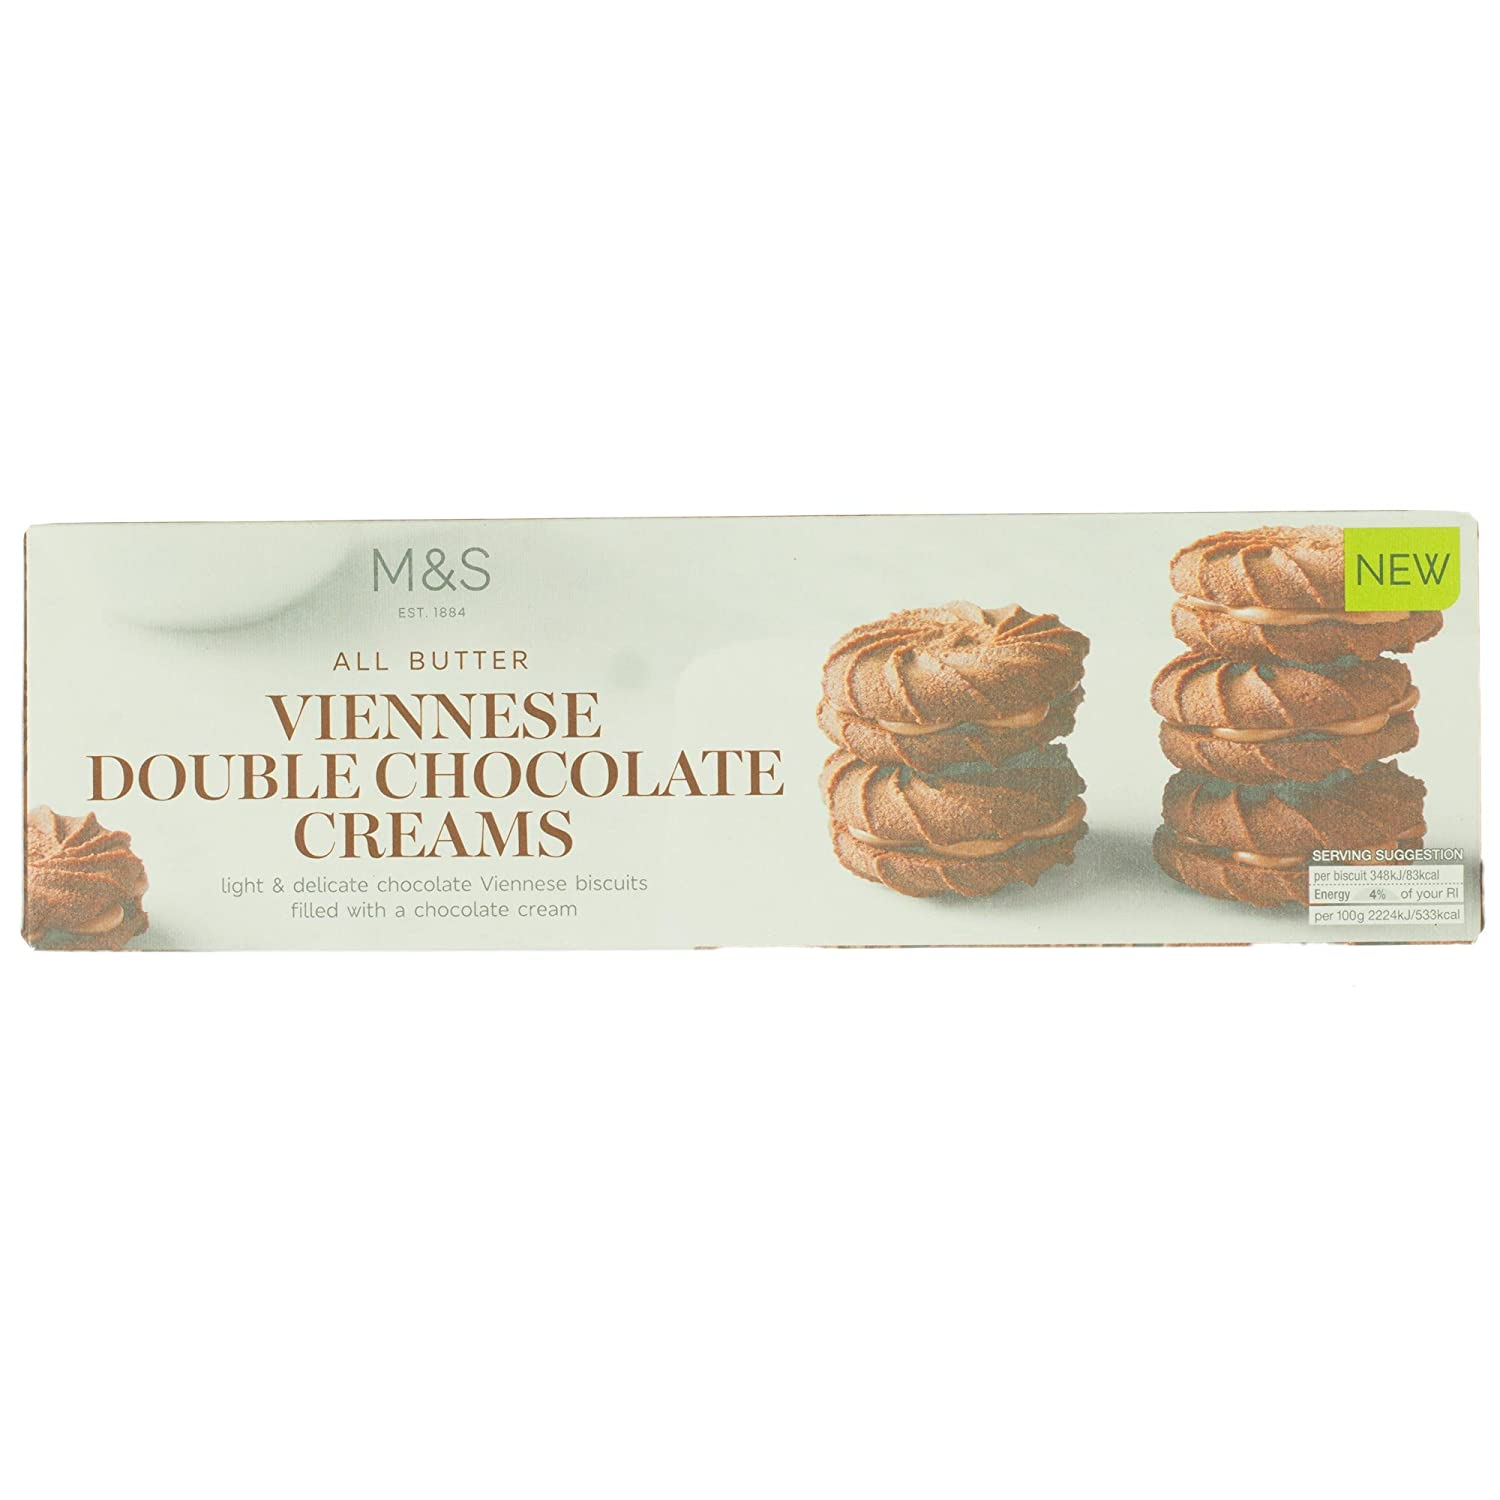 Marks & Spencer All Butter Double Chocolate Viennese Creams 125g ...